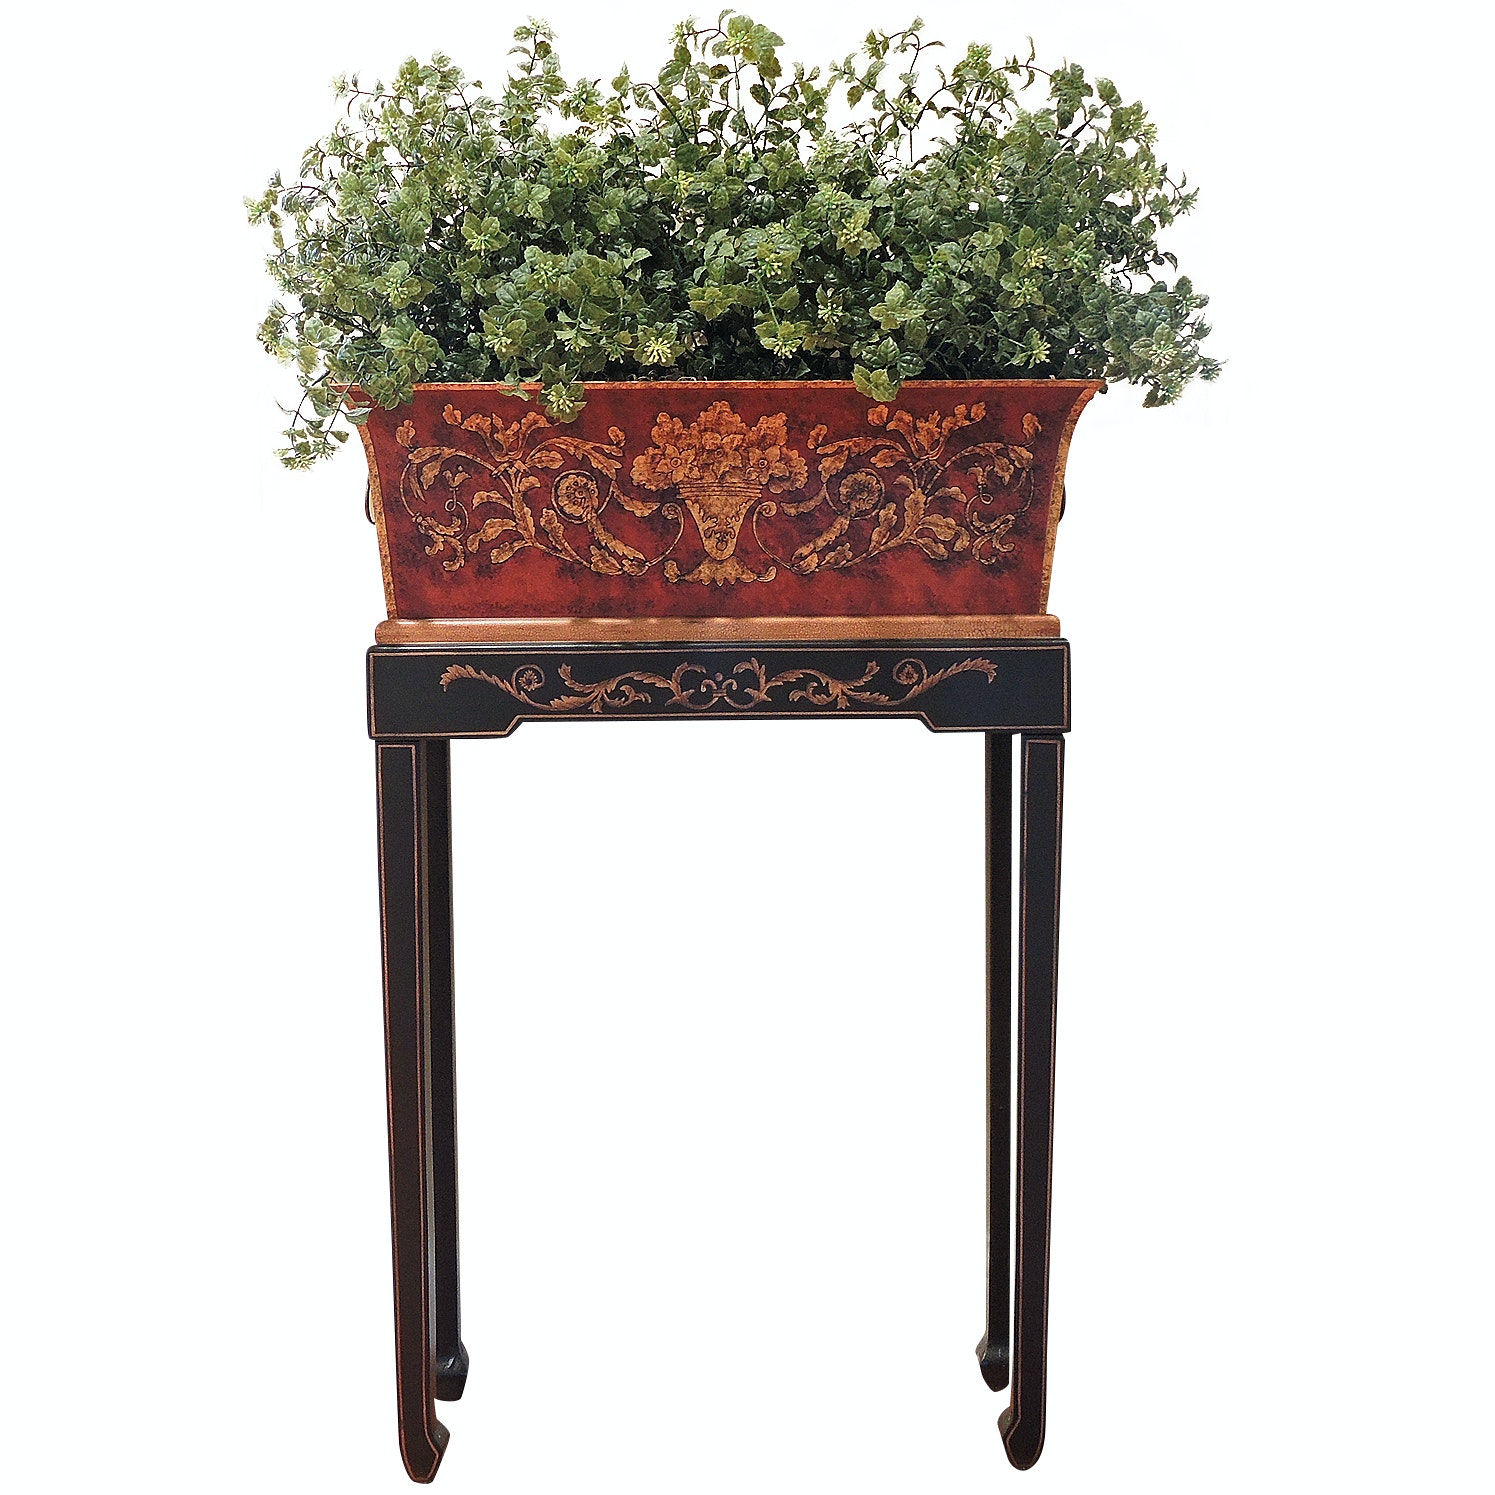 Decorative Hall Table with Metal Planter and Faux Floral Arrangement